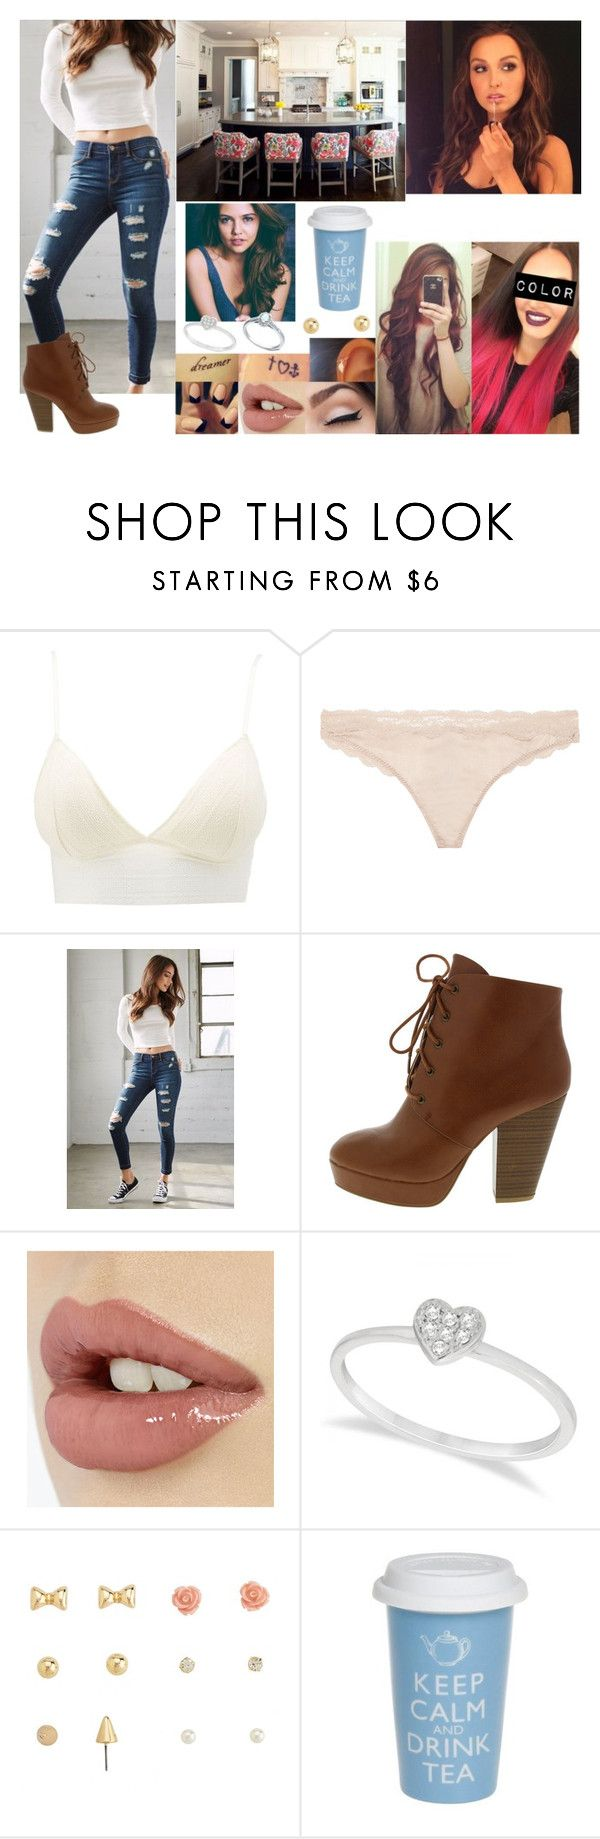 """Going Through Applications"" by samanthanicole39 ❤ liked on Polyvore featuring Charlotte Russe, STELLA McCARTNEY, Bullhead Denim Co. and Allurez"